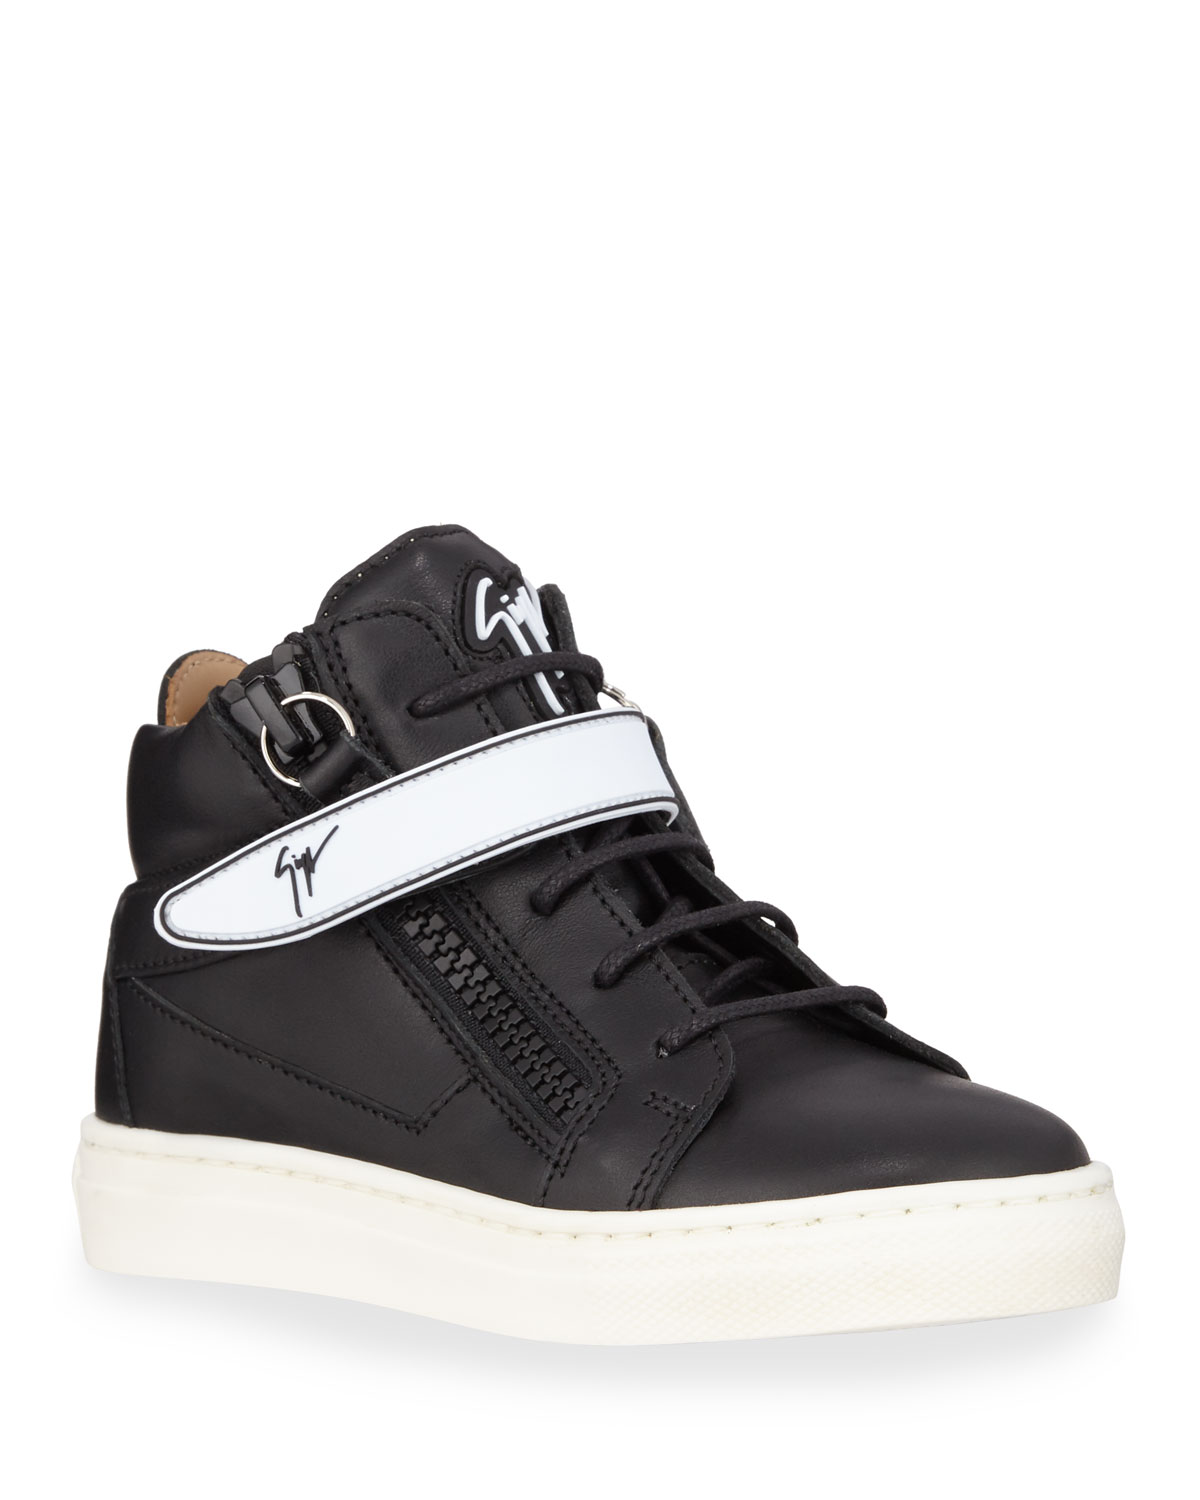 6bf48ad4ca64f Giuseppe Zanotti London Leather Grip-Strap High-Top Sneakers, Baby/Toddler/